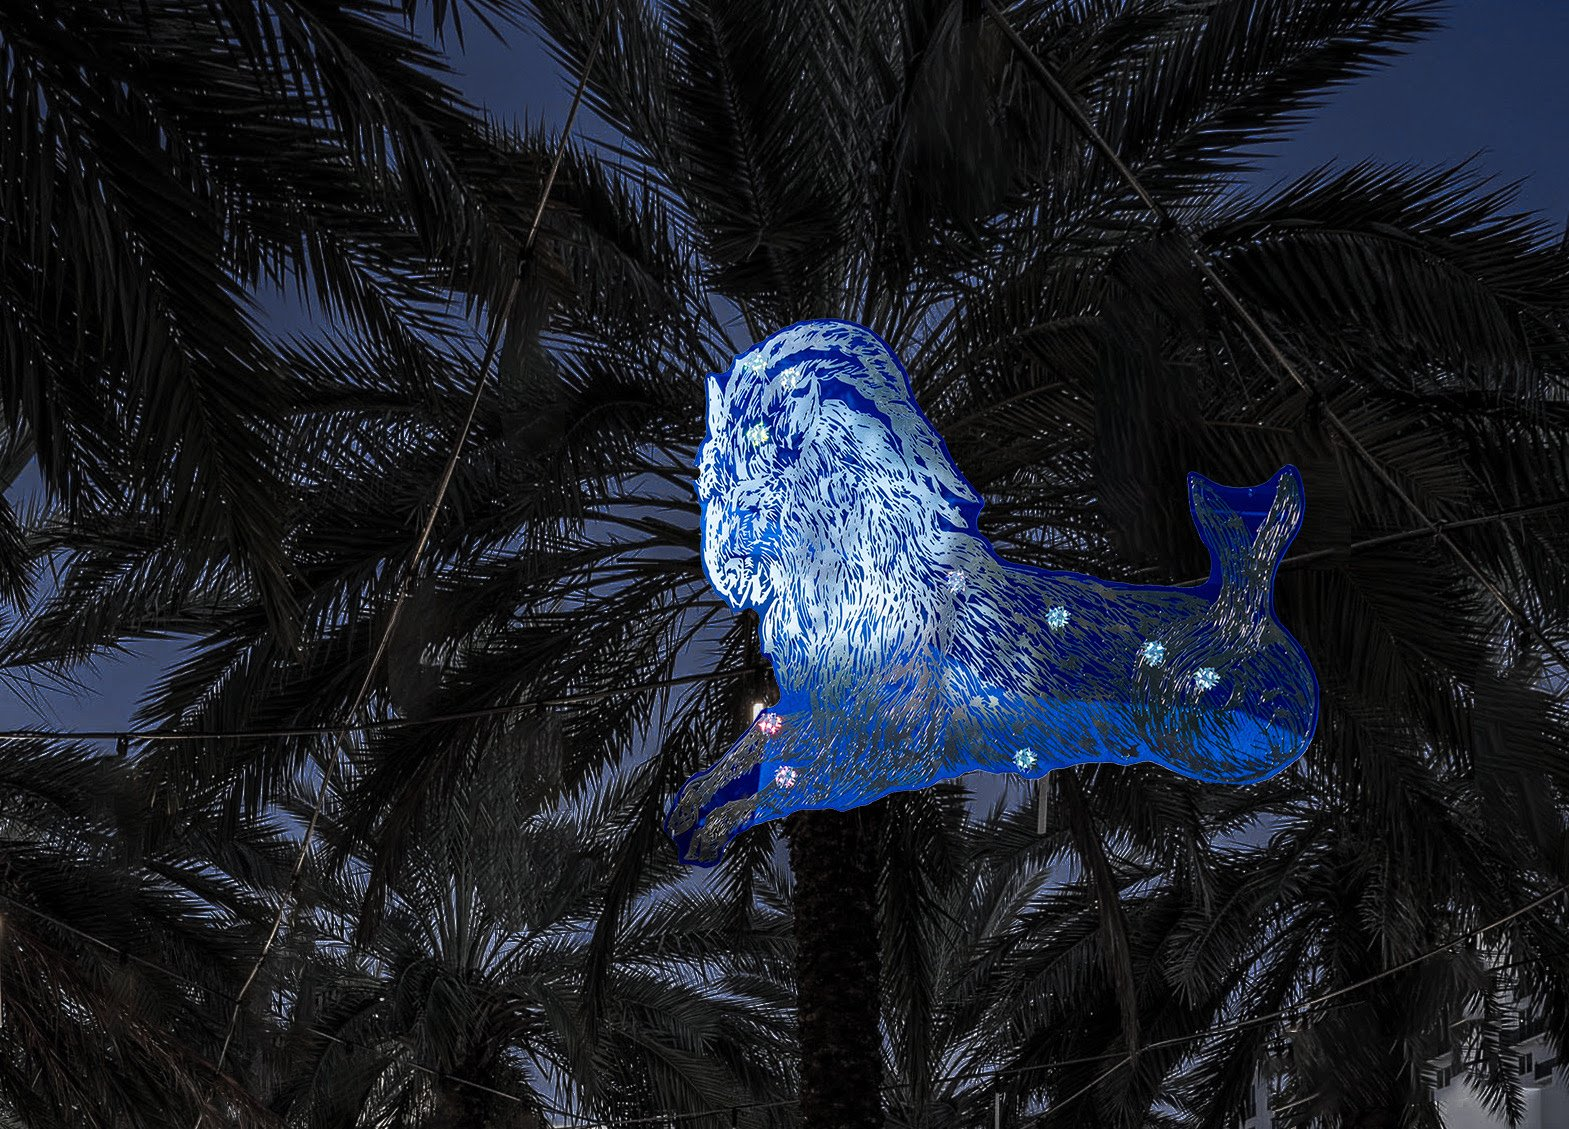 Example of Capricorn constellation by Kiki Smith for her site-specific installationy titled Blue Night.